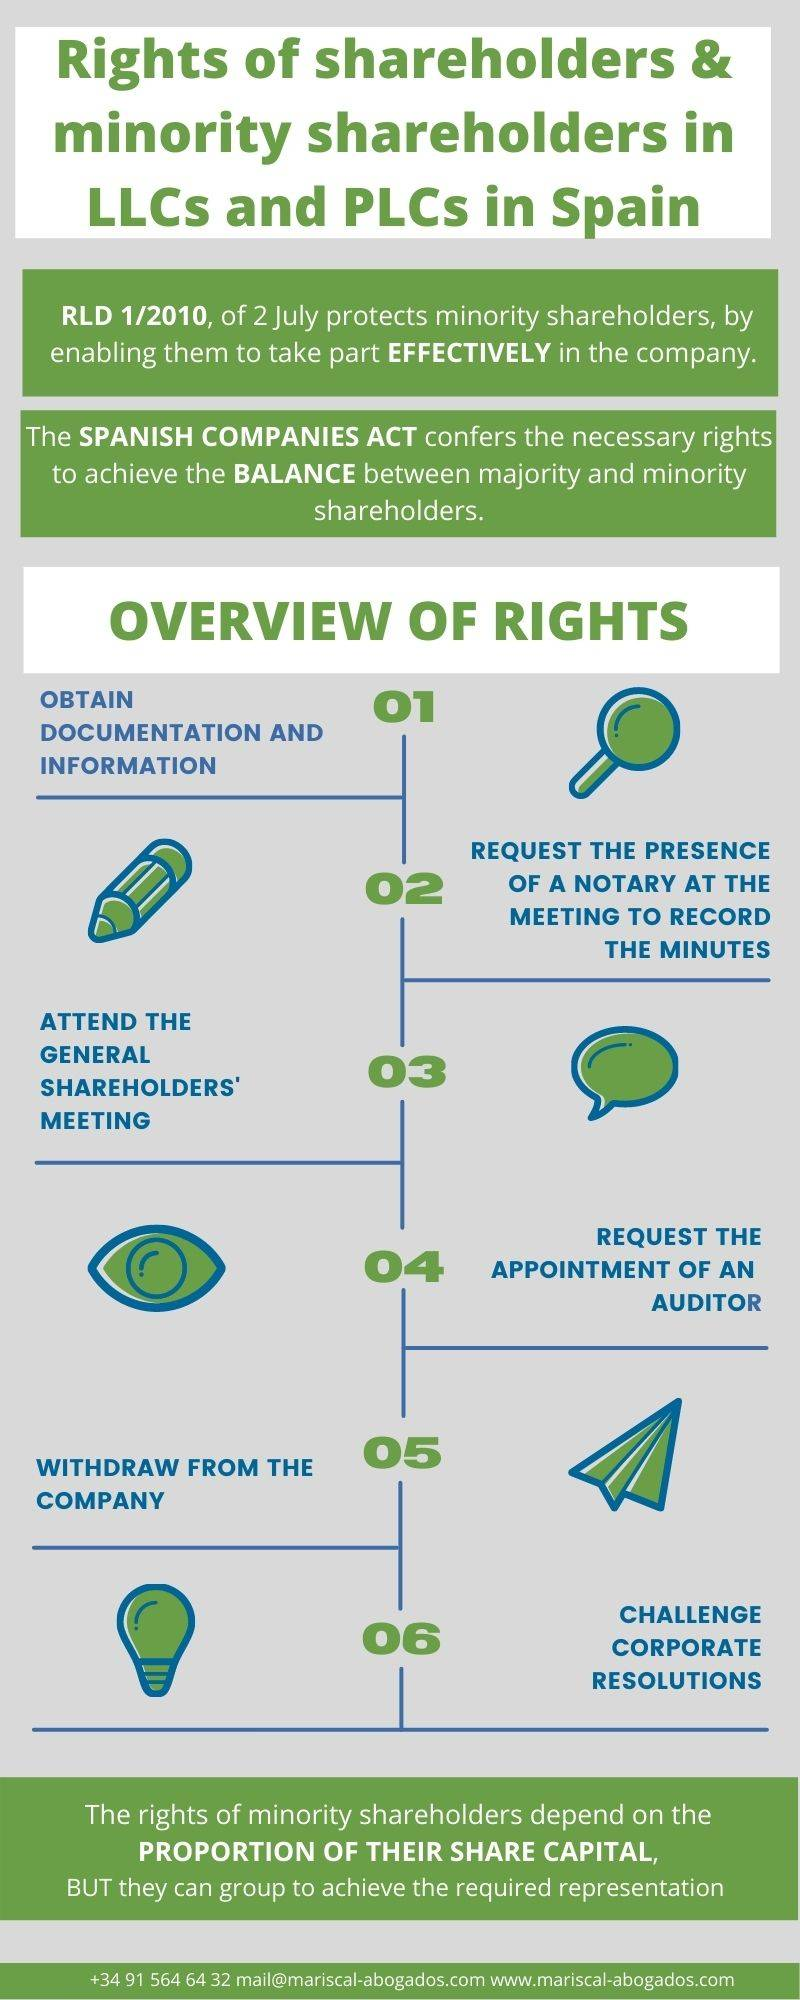 Rights of minority shareholders in Spain